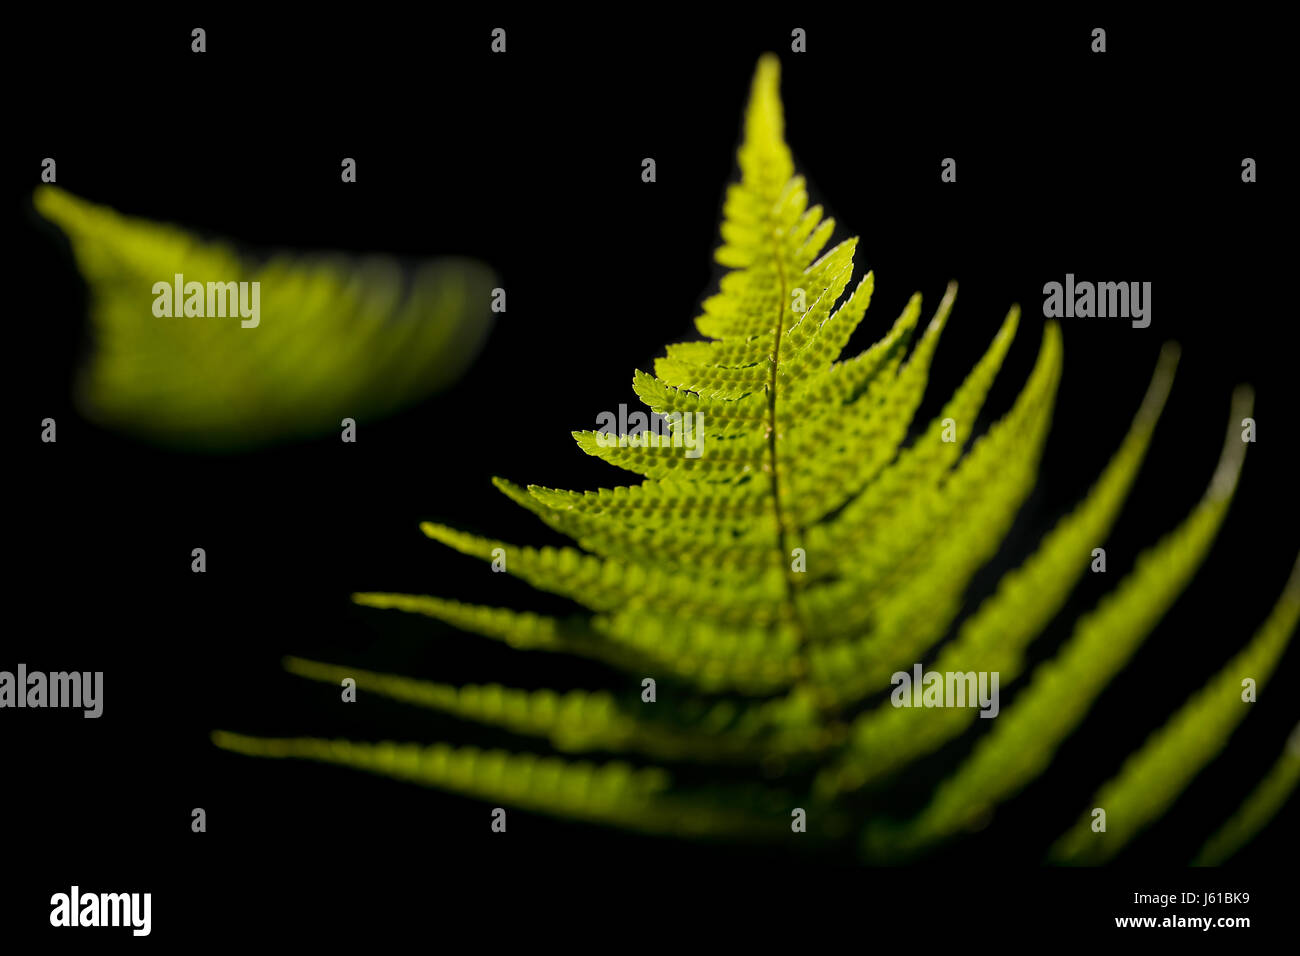 abstracted light - Stock Image